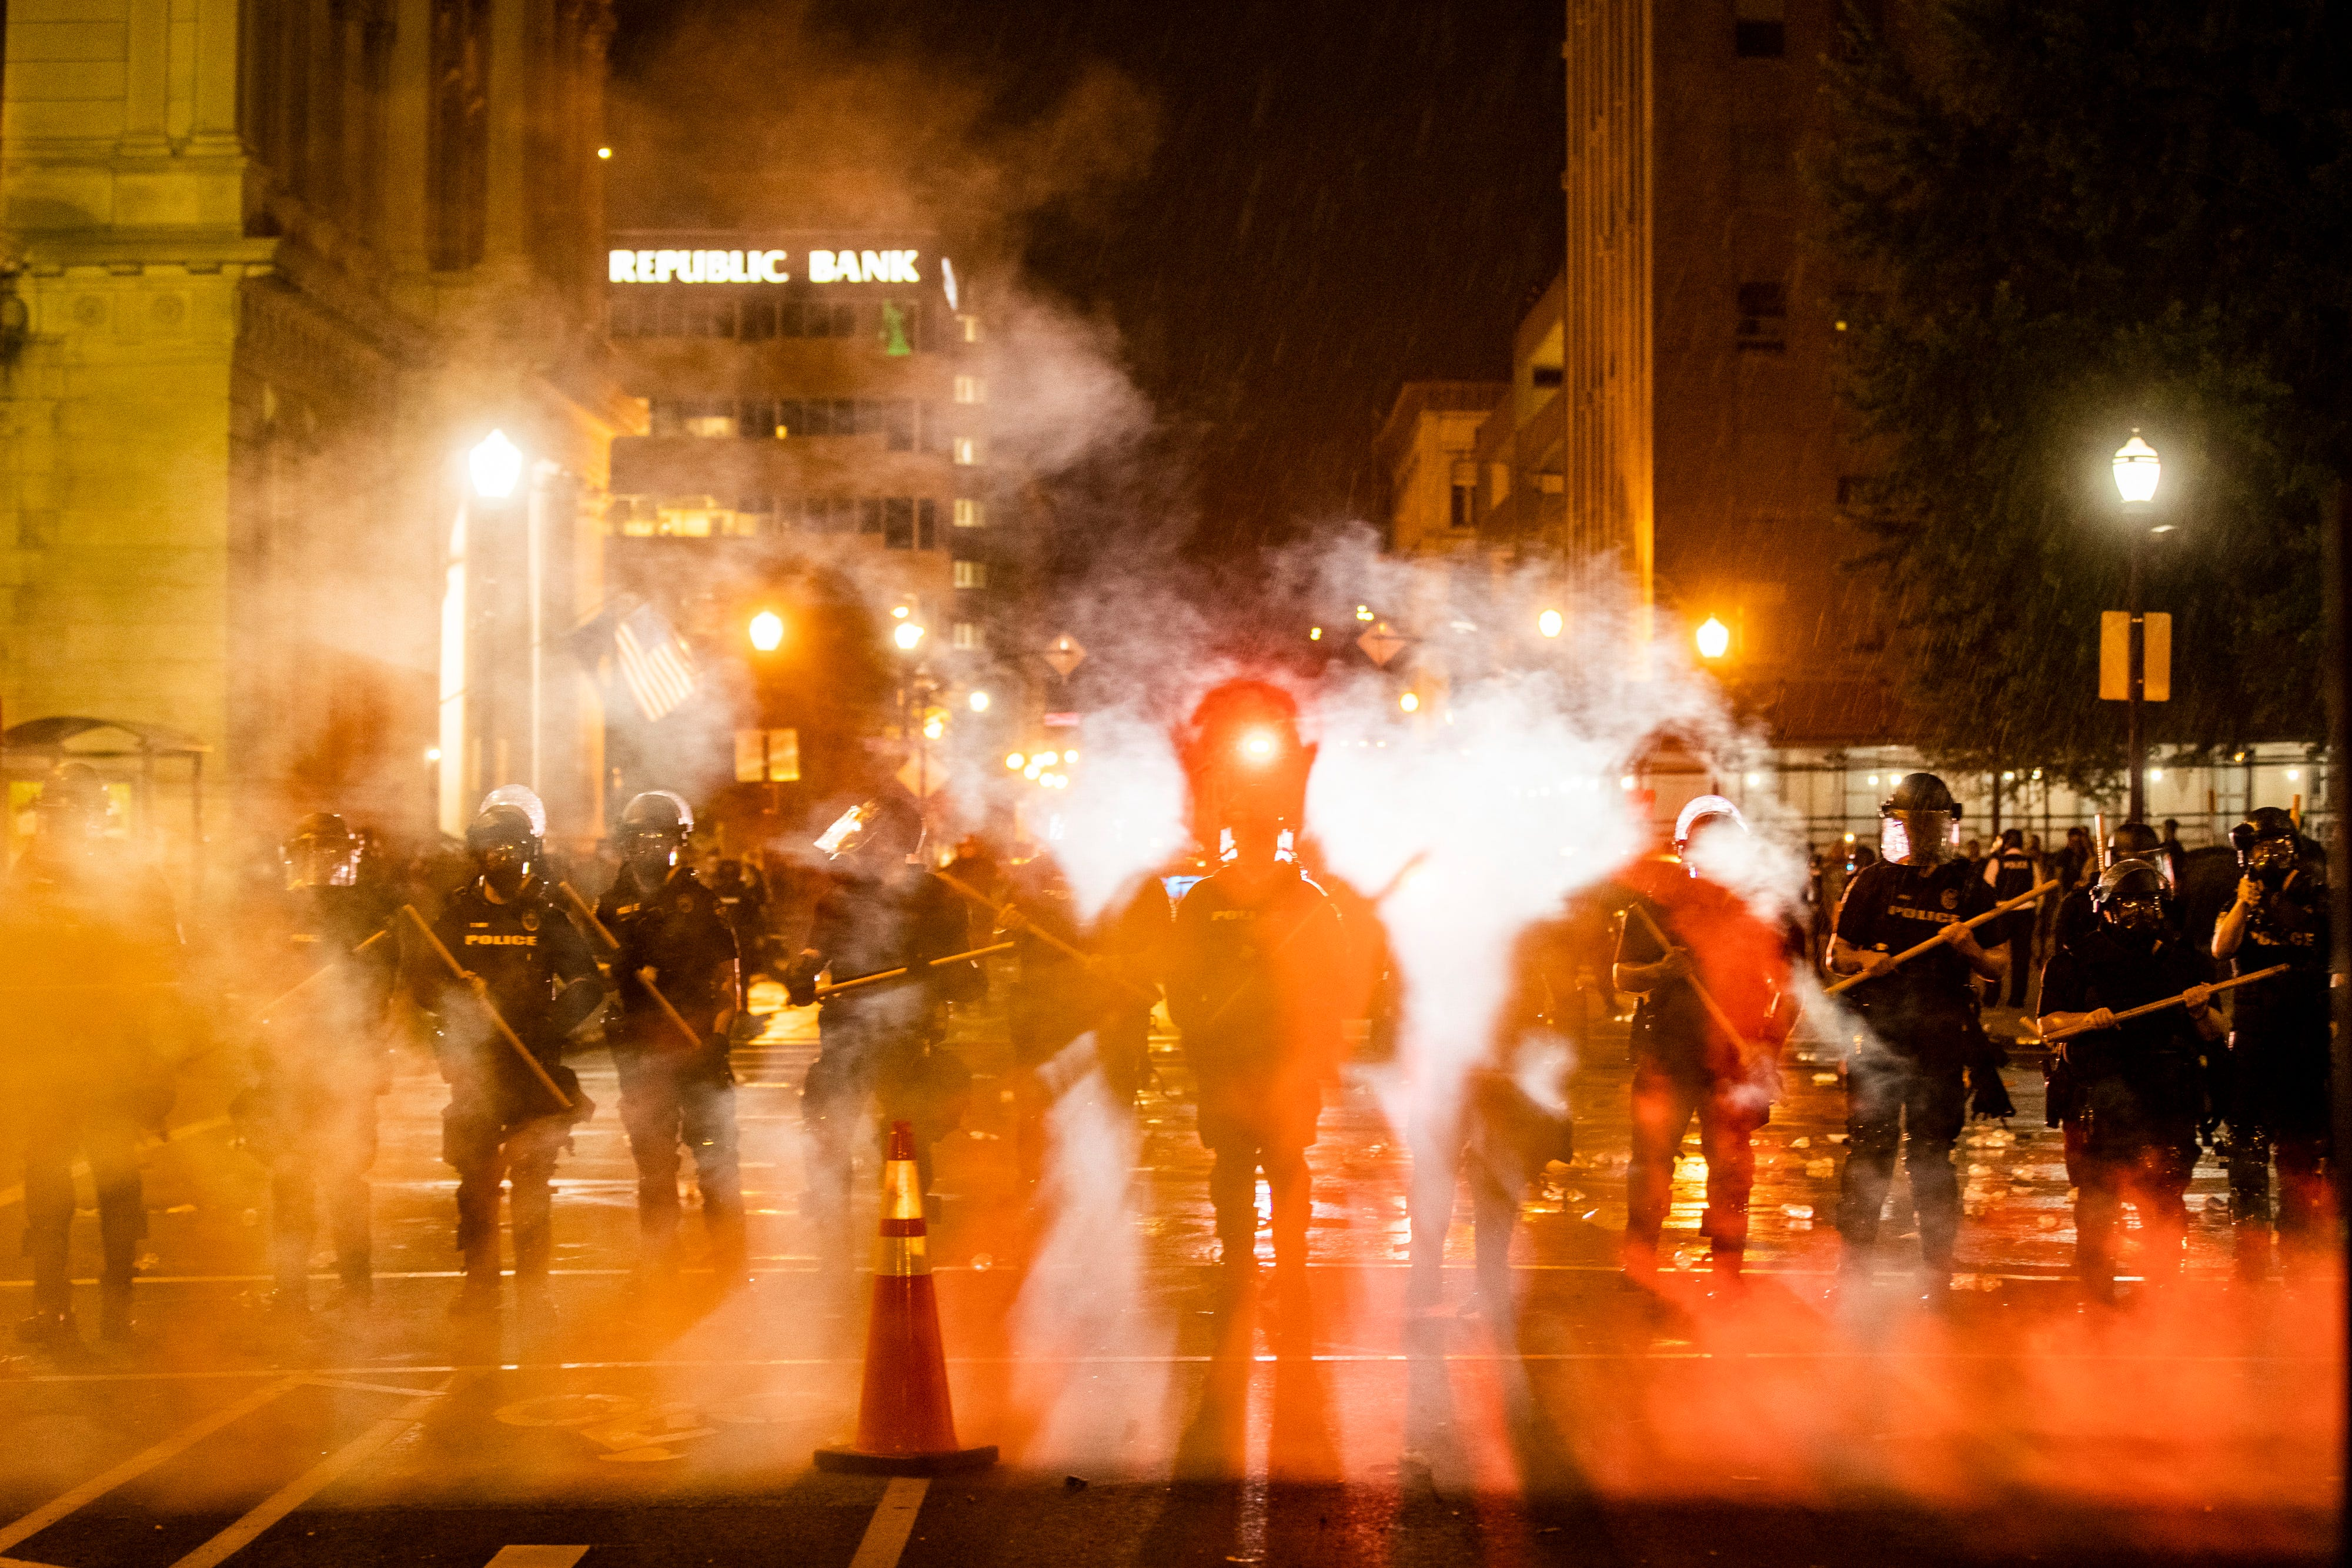 Louisville police move through a cloud of tear gas early Friday morning as the deaths of Louisville's Breonna Taylor and Minneapolis' George Floyd at the hands of police spurred protests. May 29, 2020